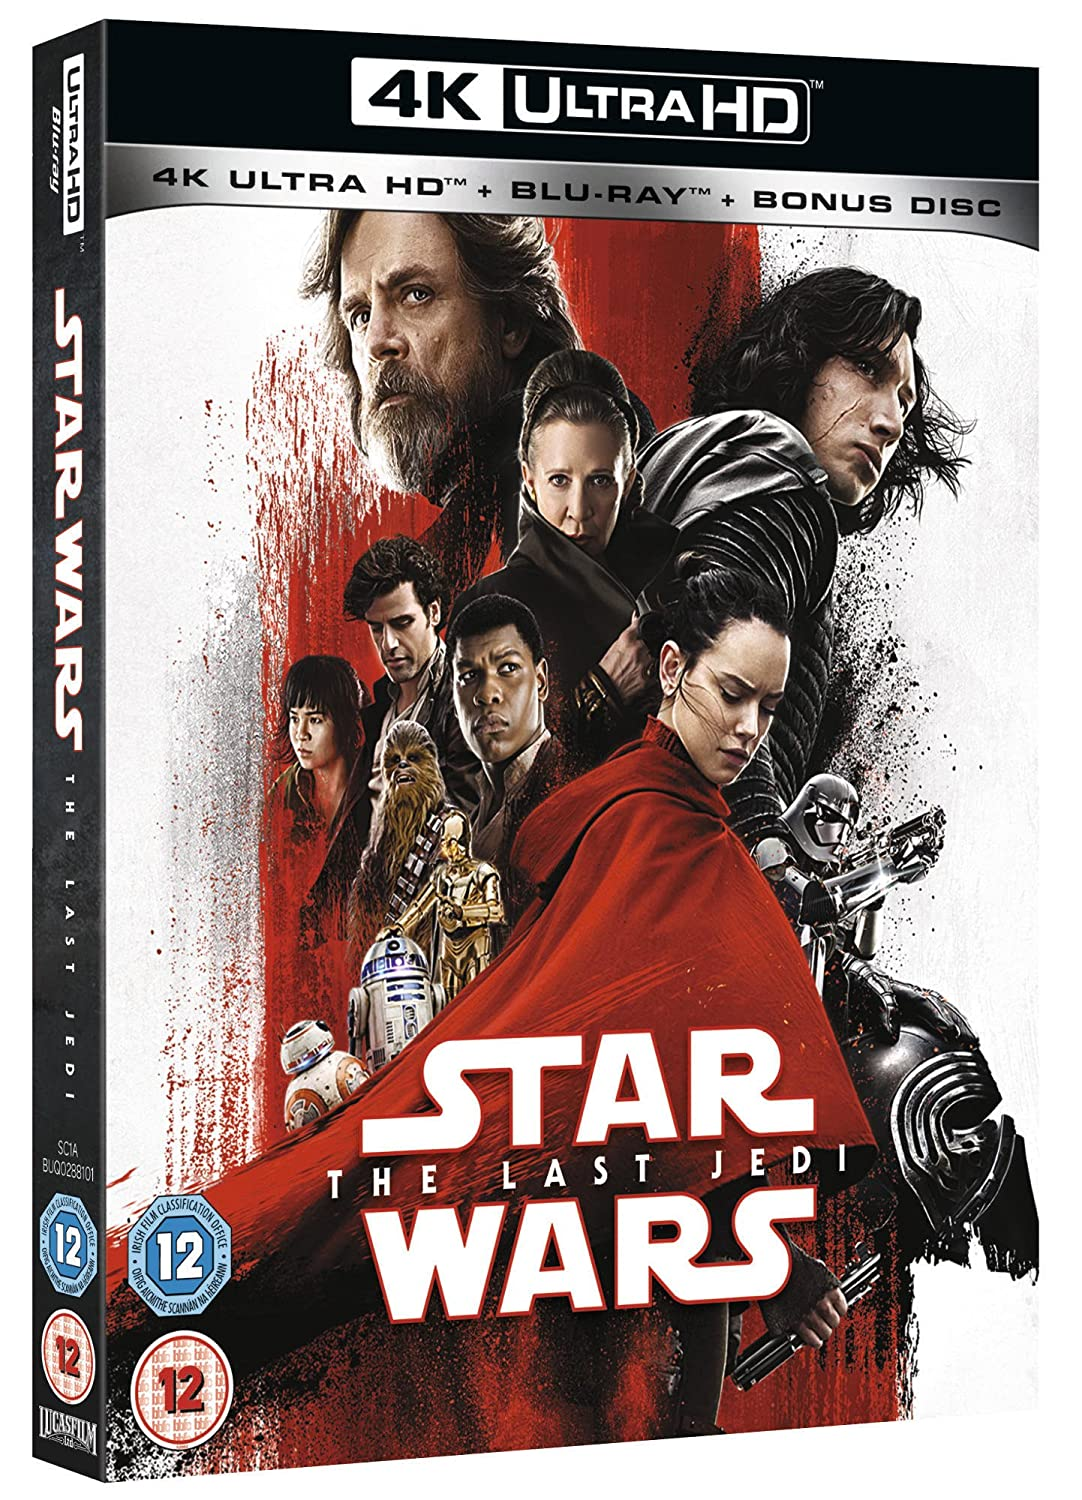 Amazon com: Star Wars: The Last Jedi [4K UHD] [Blu-ray] [2017